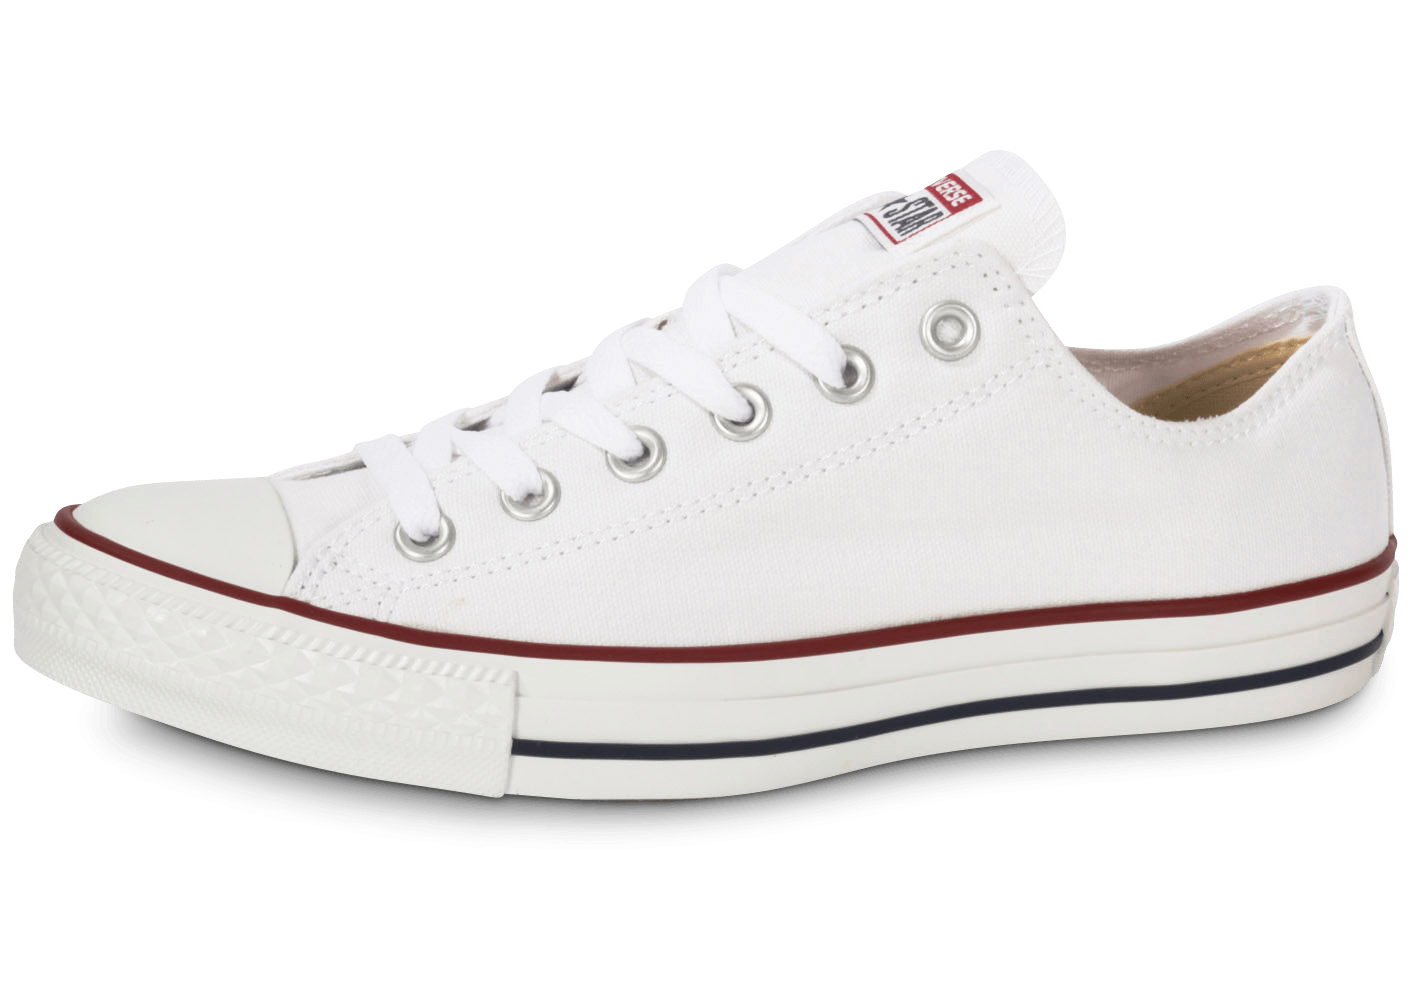 Converse Chuck Taylor All Star low blanche